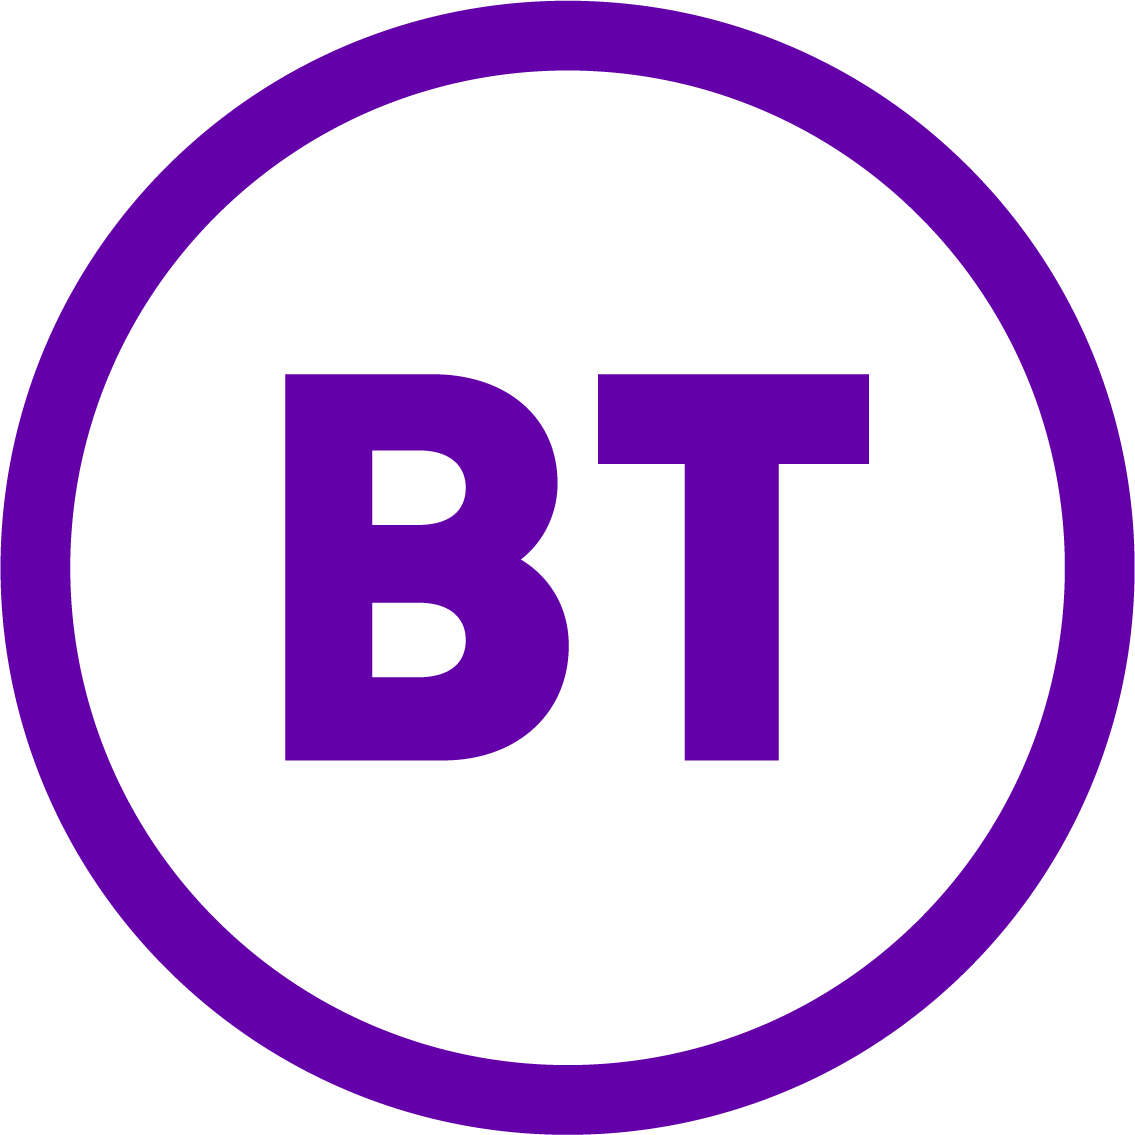 BT Shop - Deal of the Day on Tech from BT Shop